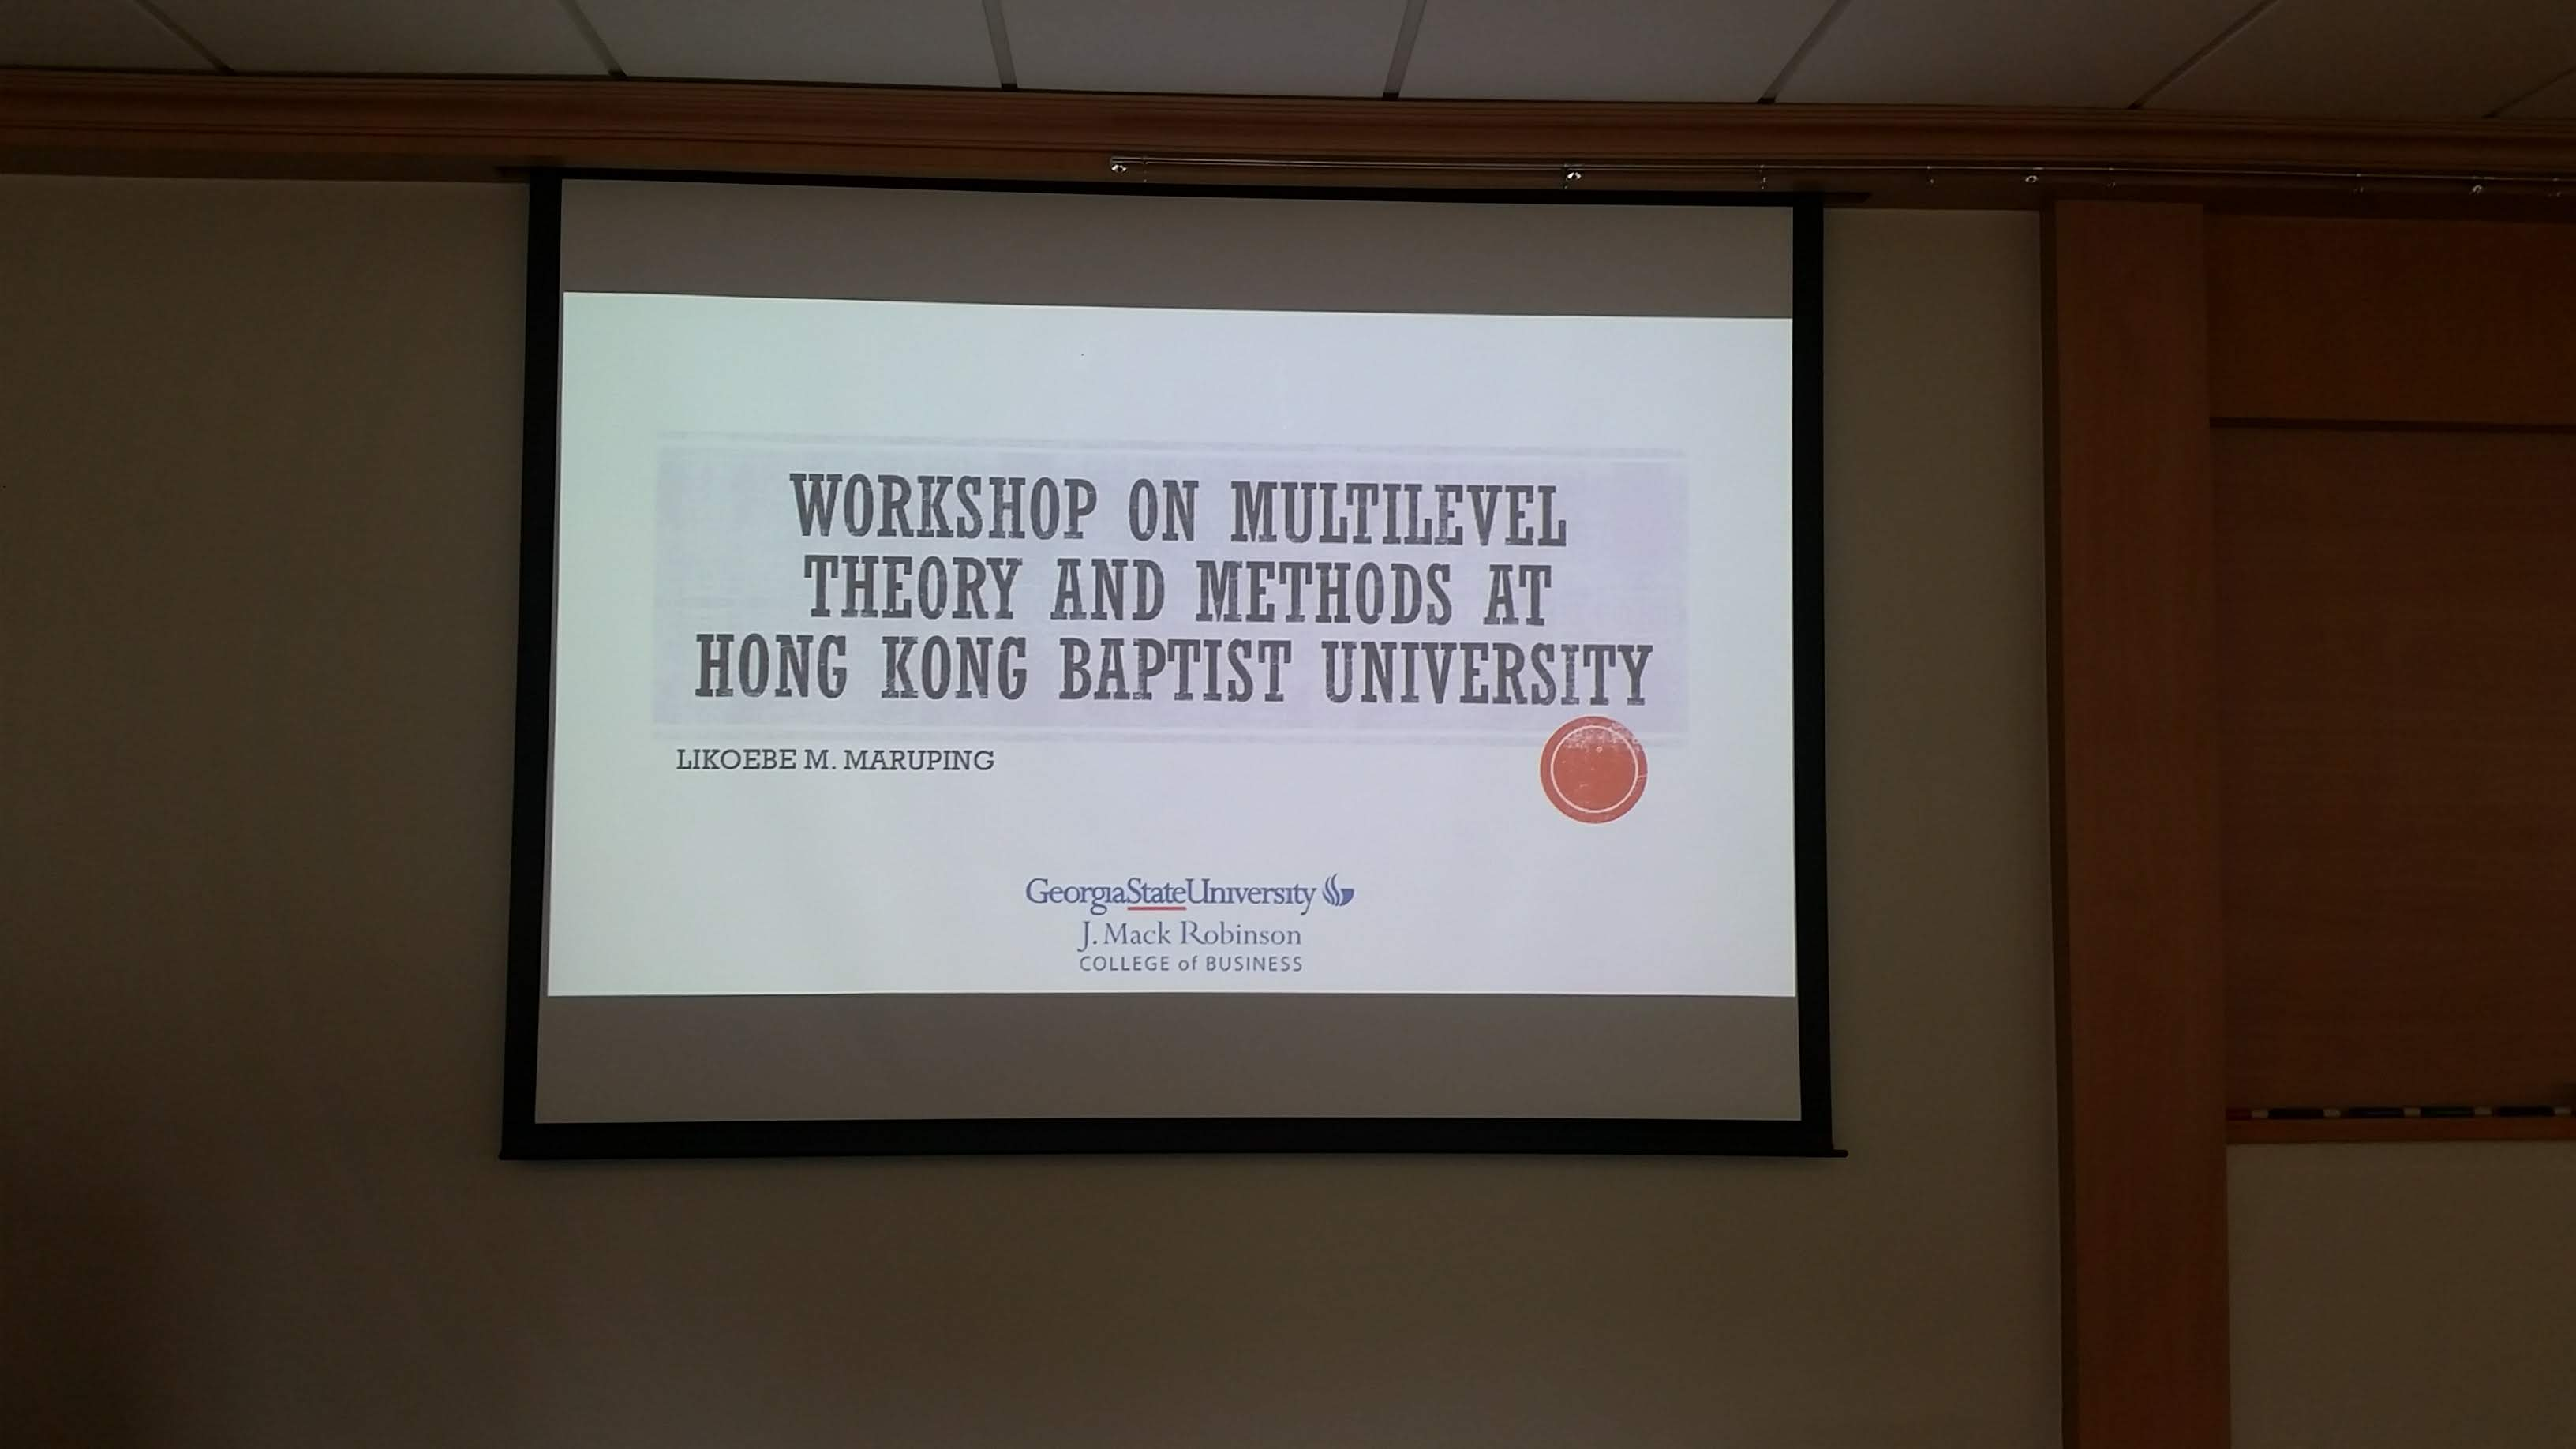 Workshop on Multilevel Theorizing and Analysis